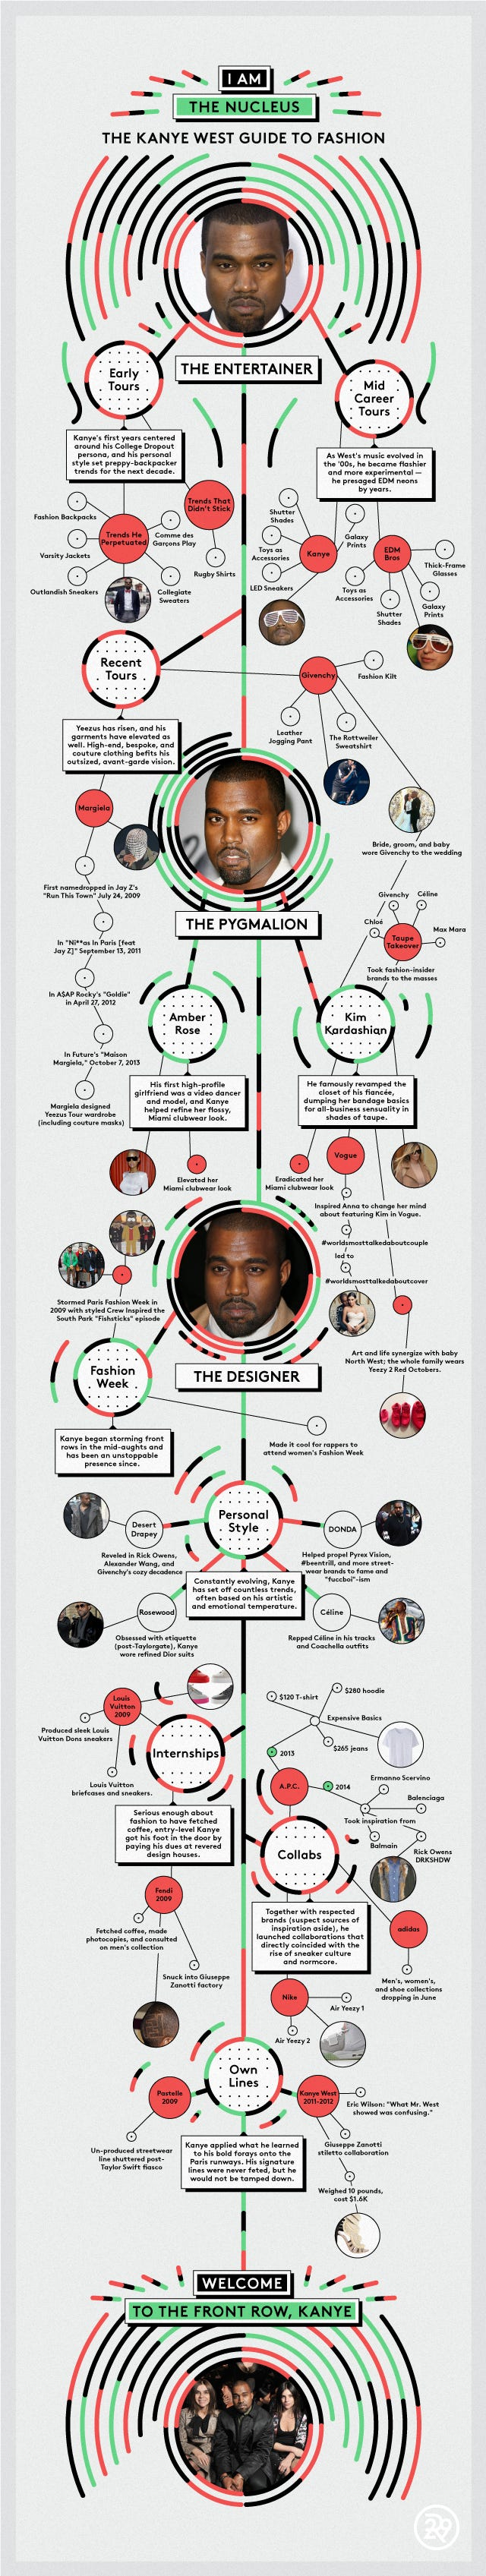 1-Revision-E6---Kanye-West-Sphere-of-Influence-final-1-01_revised_R29